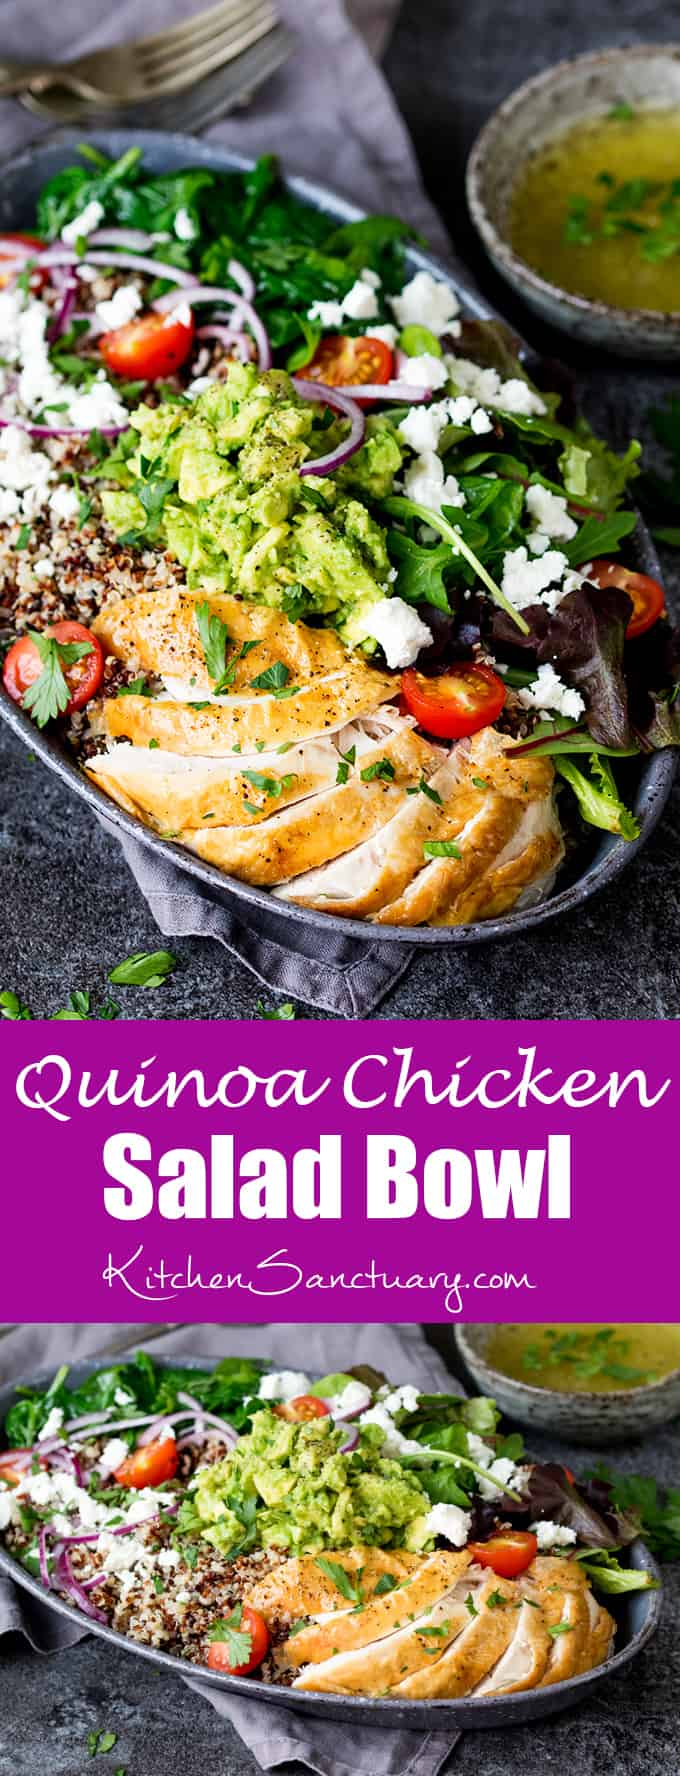 Chicken And Quinoa Salad Bowl Nicky S Kitchen Sanctuary